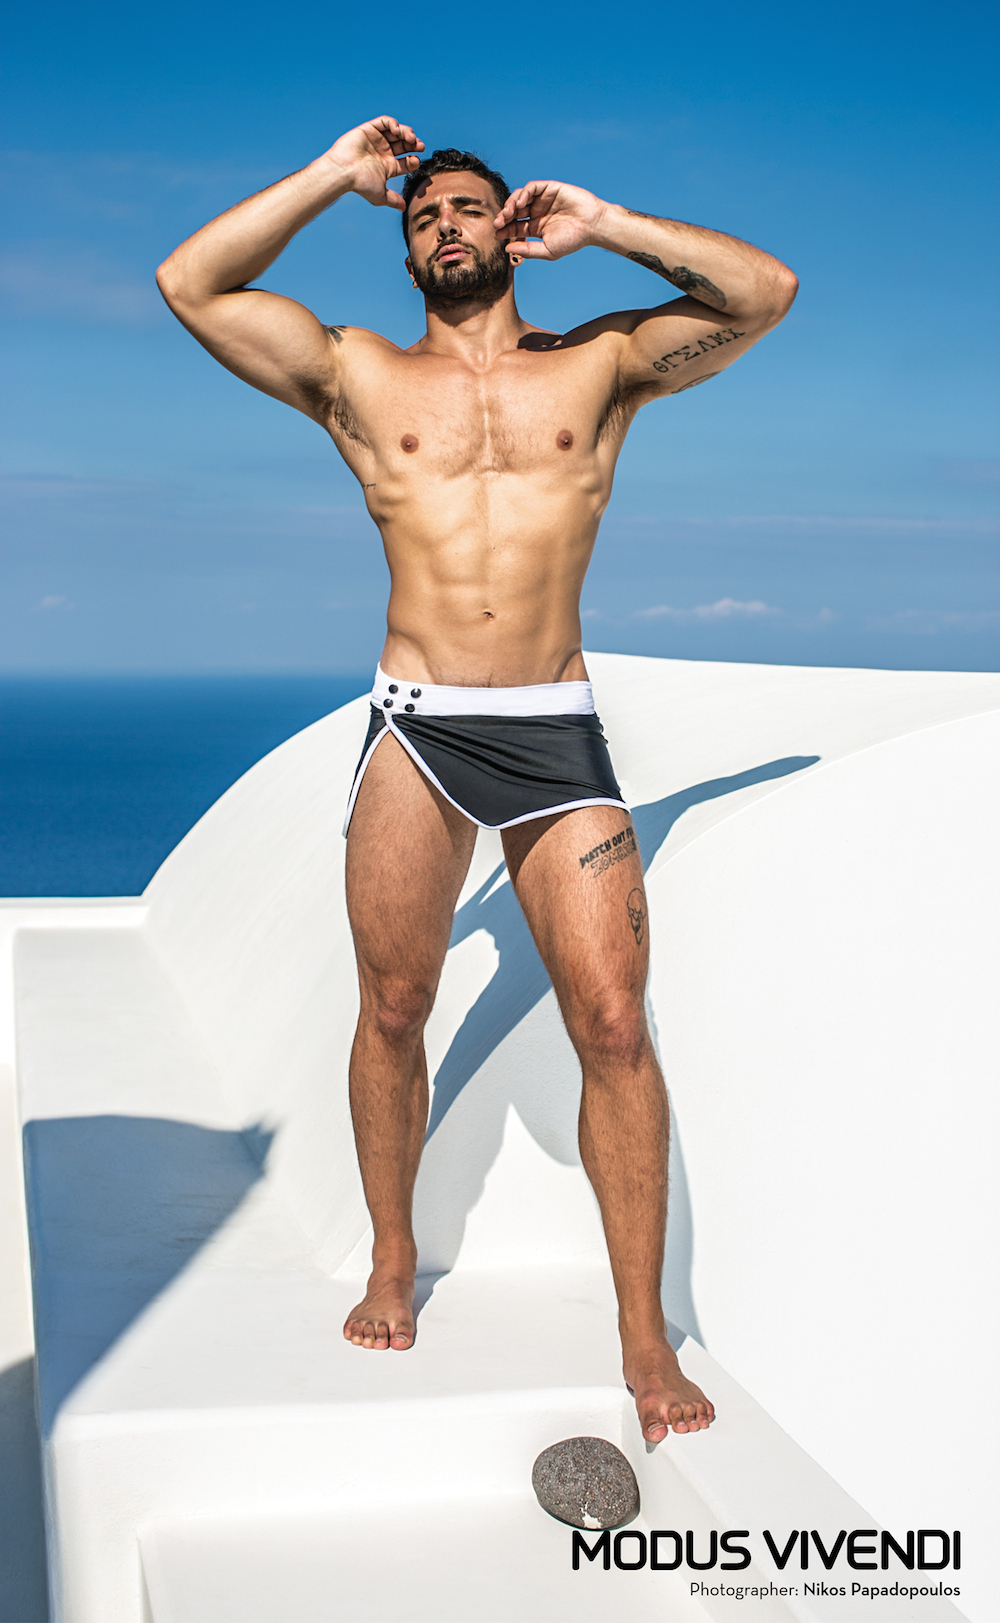 Modus Vivendi reinvents your summer outfit